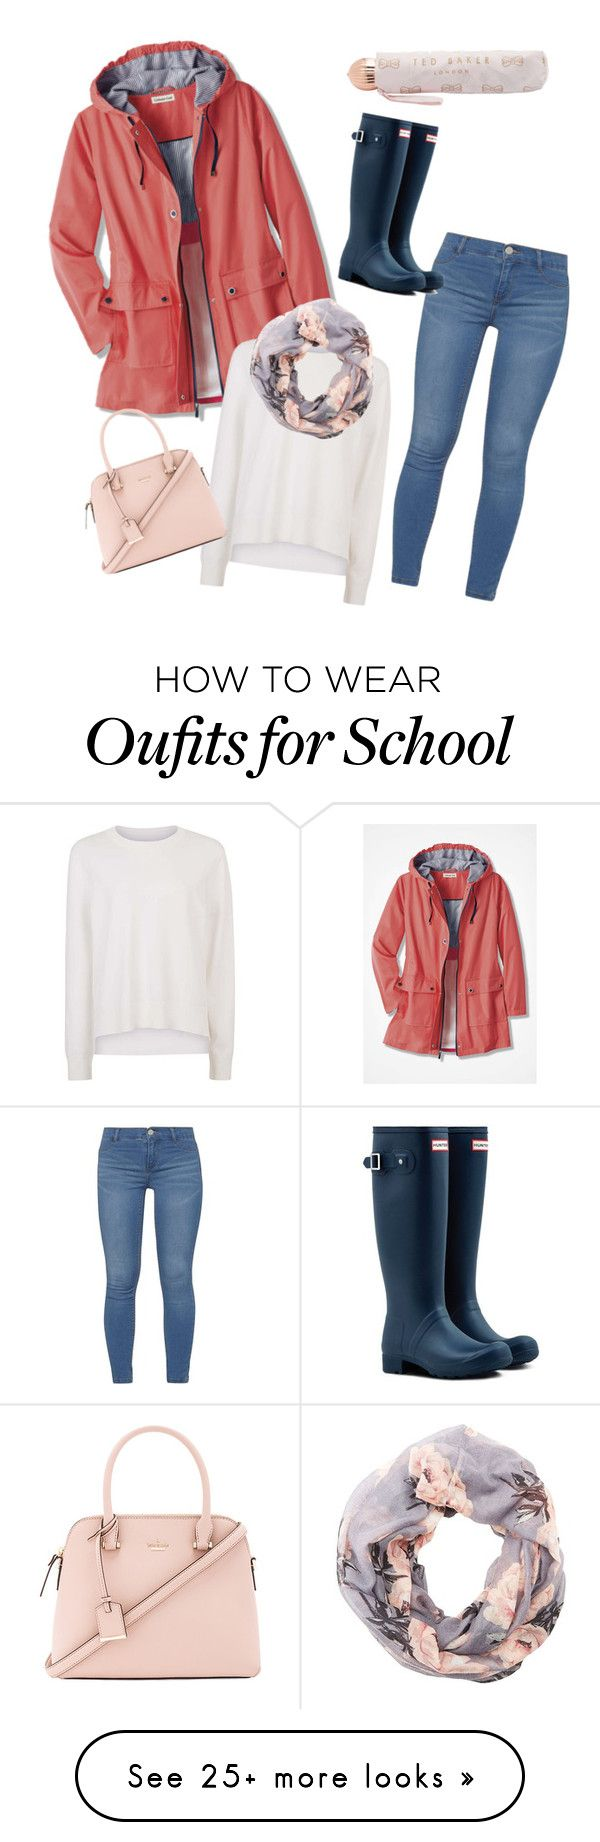 """Rainy day at school"" by martha-are on Polyvore featuring Dorothy Perkins, Sweaty Betty, Charlotte Russe, Ted Baker, Hunter and Kate Spade"